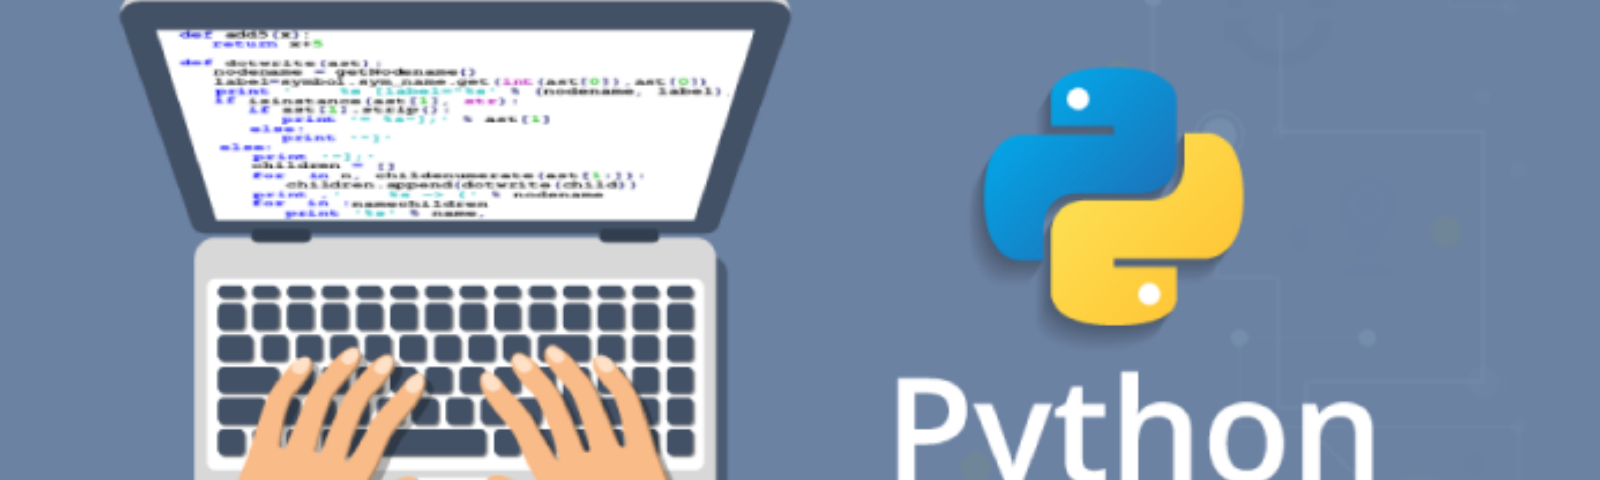 Python Programming Language | Learn Python With Examples | Edureka